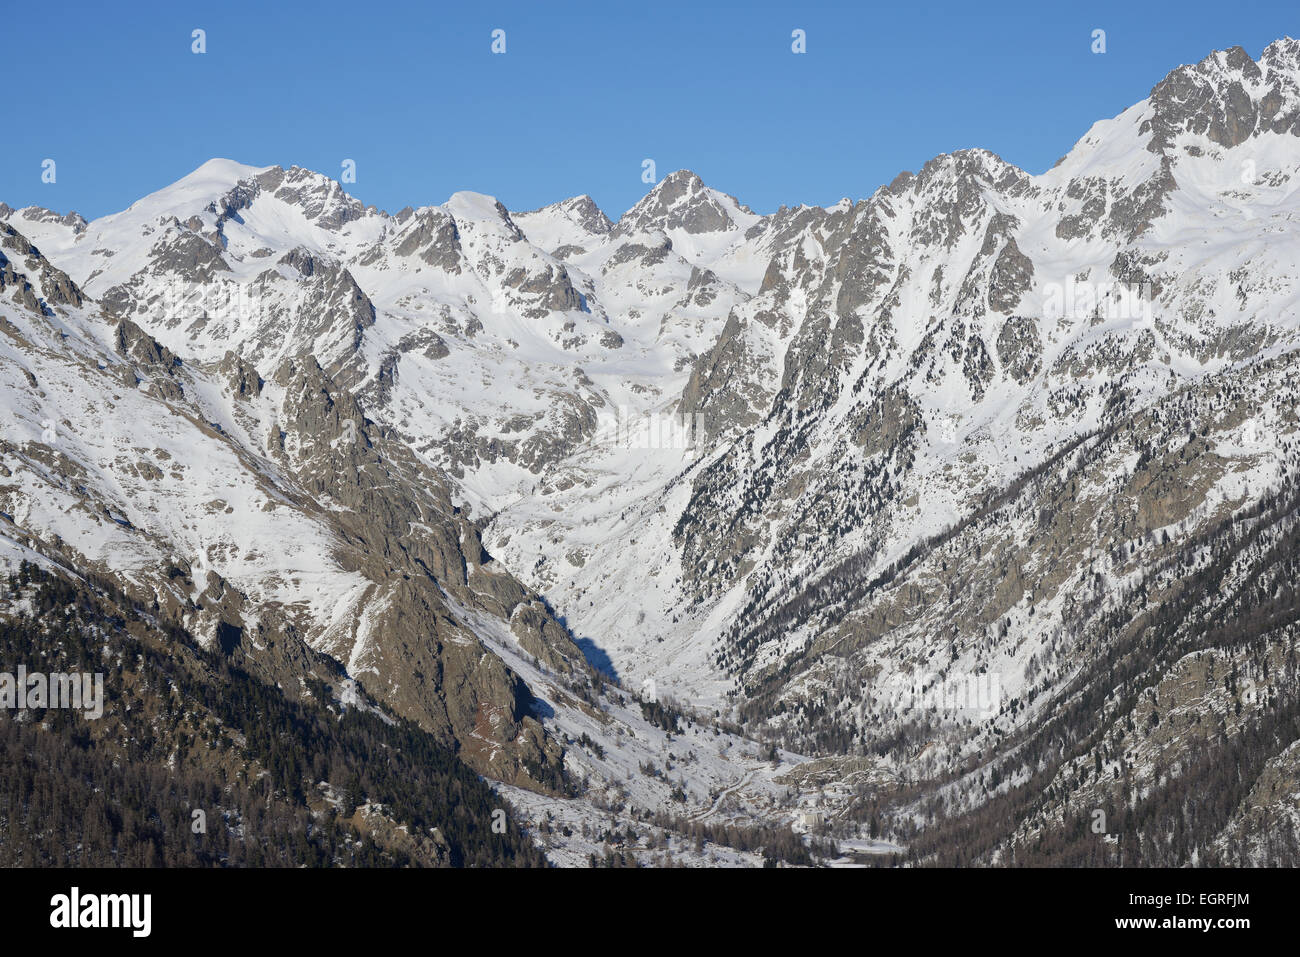 GORDOLASQUE VALLEY (aerial view). Mercantour National Park, Alpes-Maritimes, French Riviera, France. Stock Photo